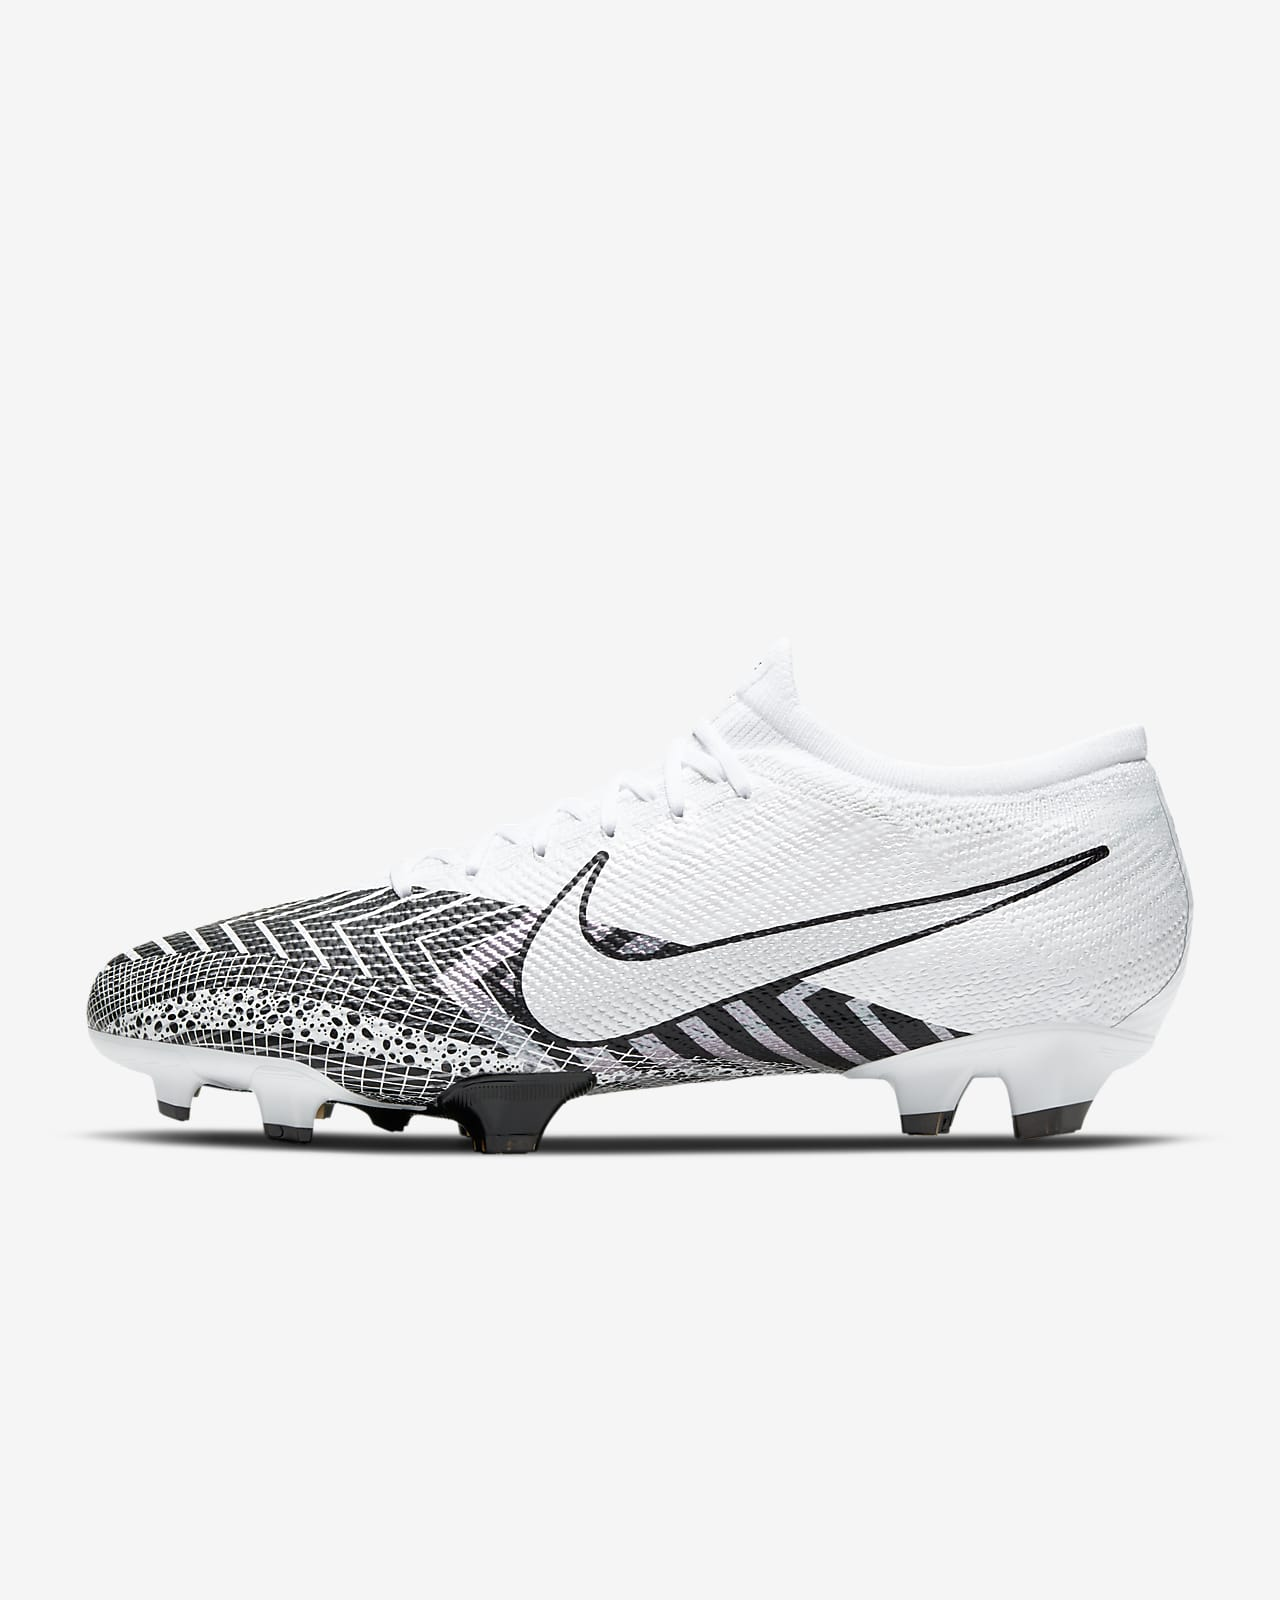 Nike Mercurial Vapor 13 Pro MDS FG Firm-Ground Football Boot